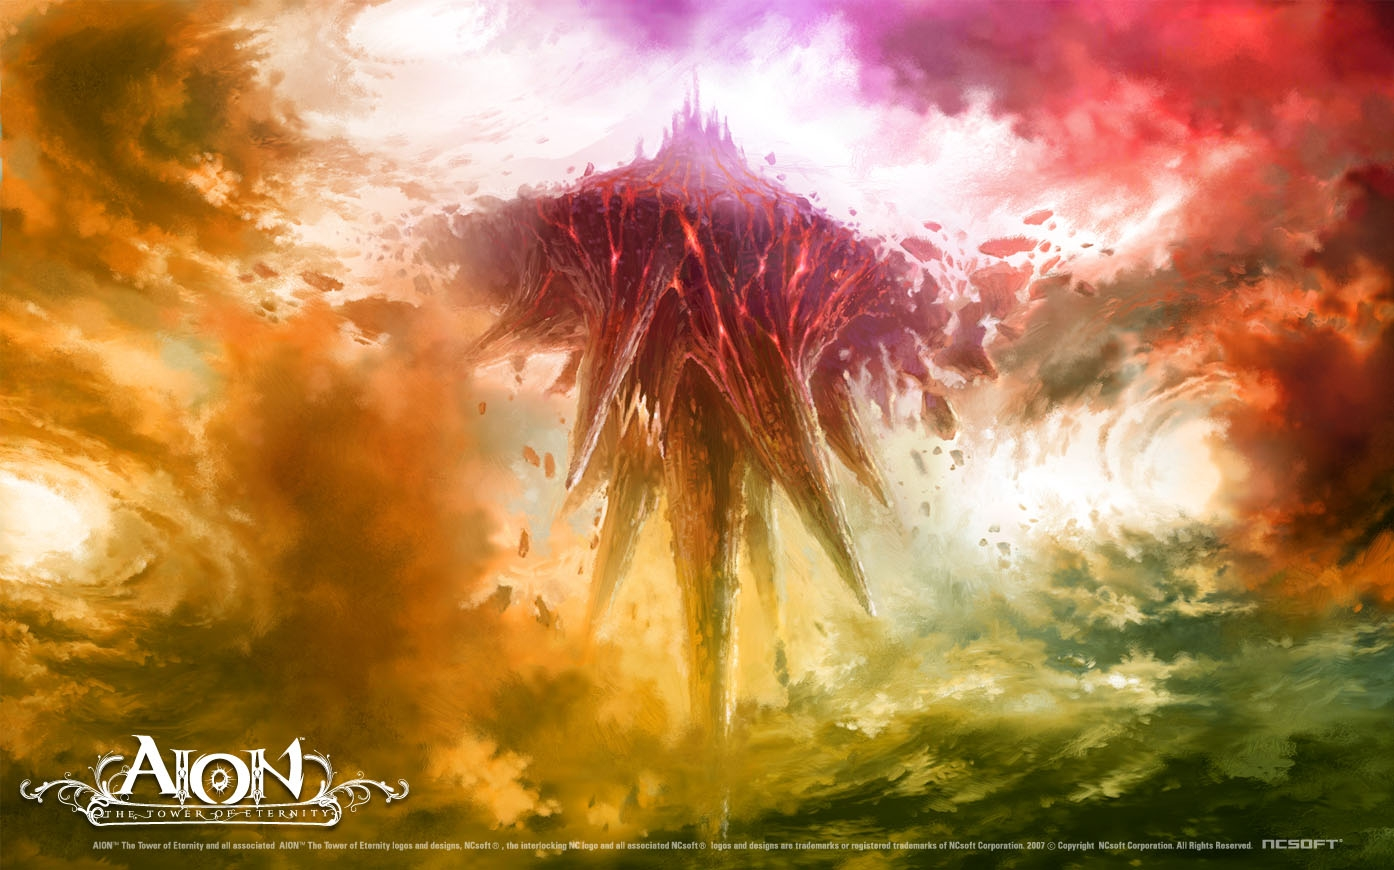 http://2.bp.blogspot.com/-xlNeJvQ6-QI/TaJX-QB86qI/AAAAAAAABRc/pjoUE-EN2Ao/s1600/AION-Wallpaper-Screenshot-PC-Game-Online-18.jpg